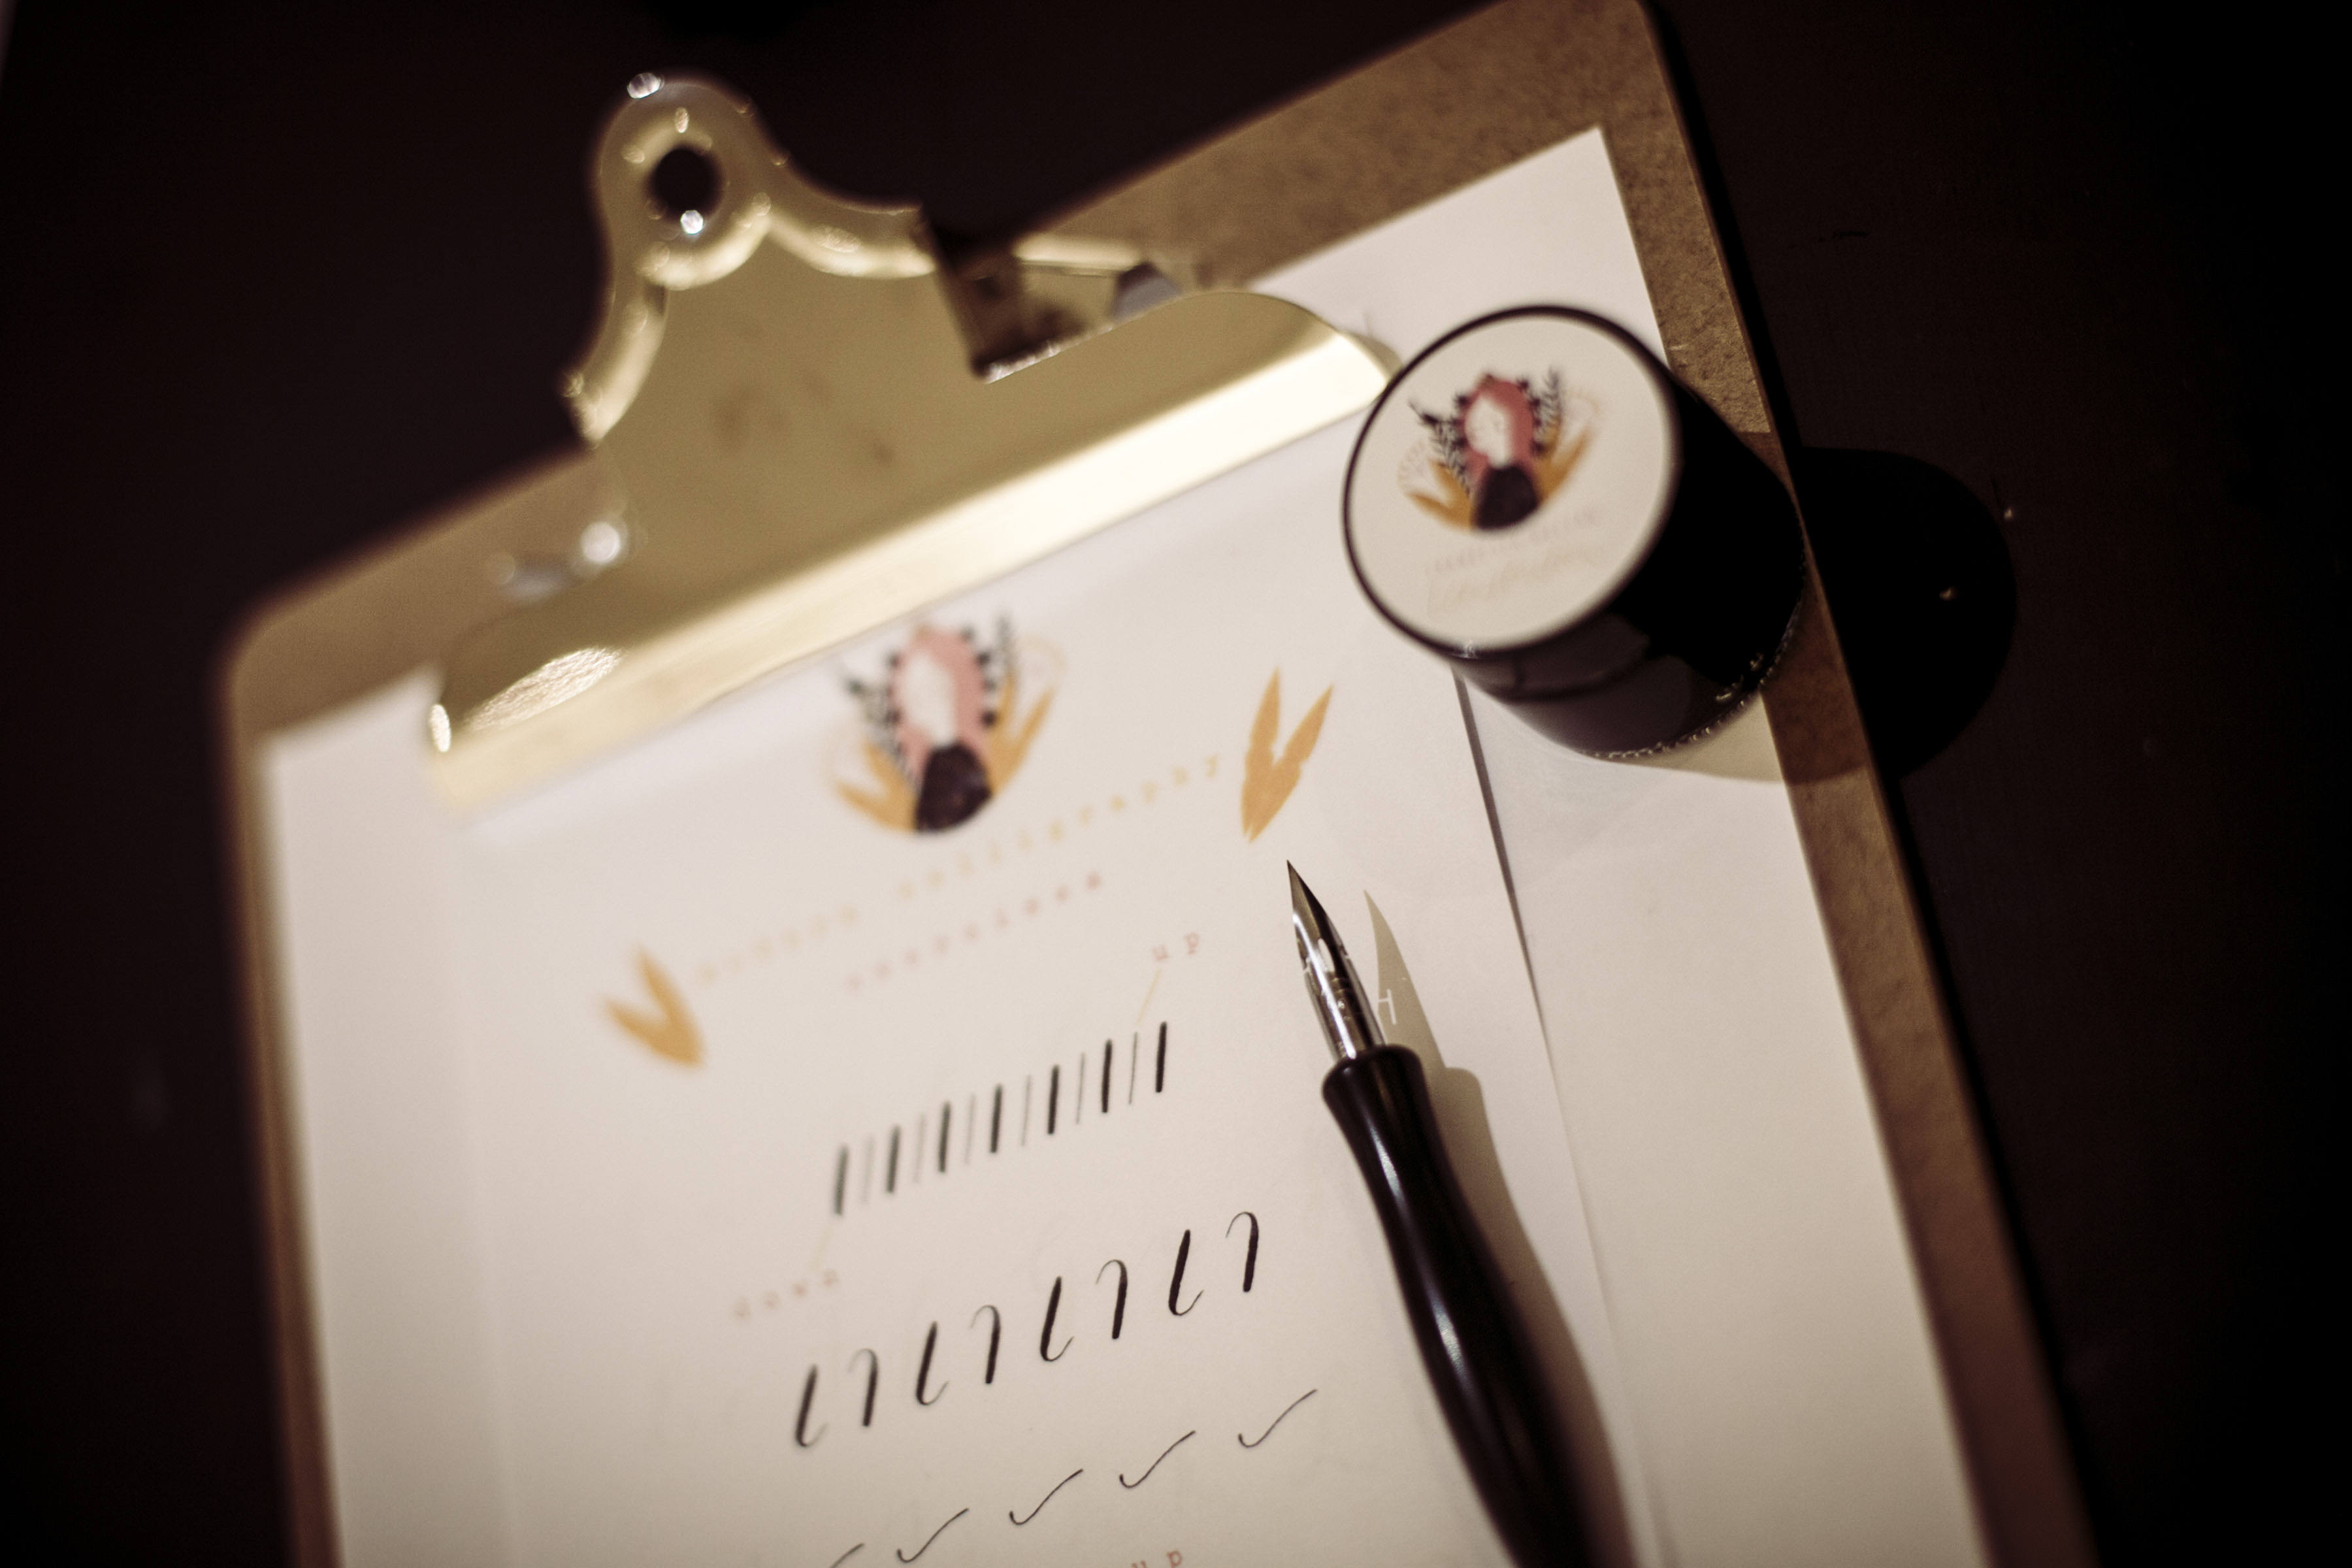 Francesca McLean Introduction to Modern Calligraphy image showing pen, ink and clipboard with writing